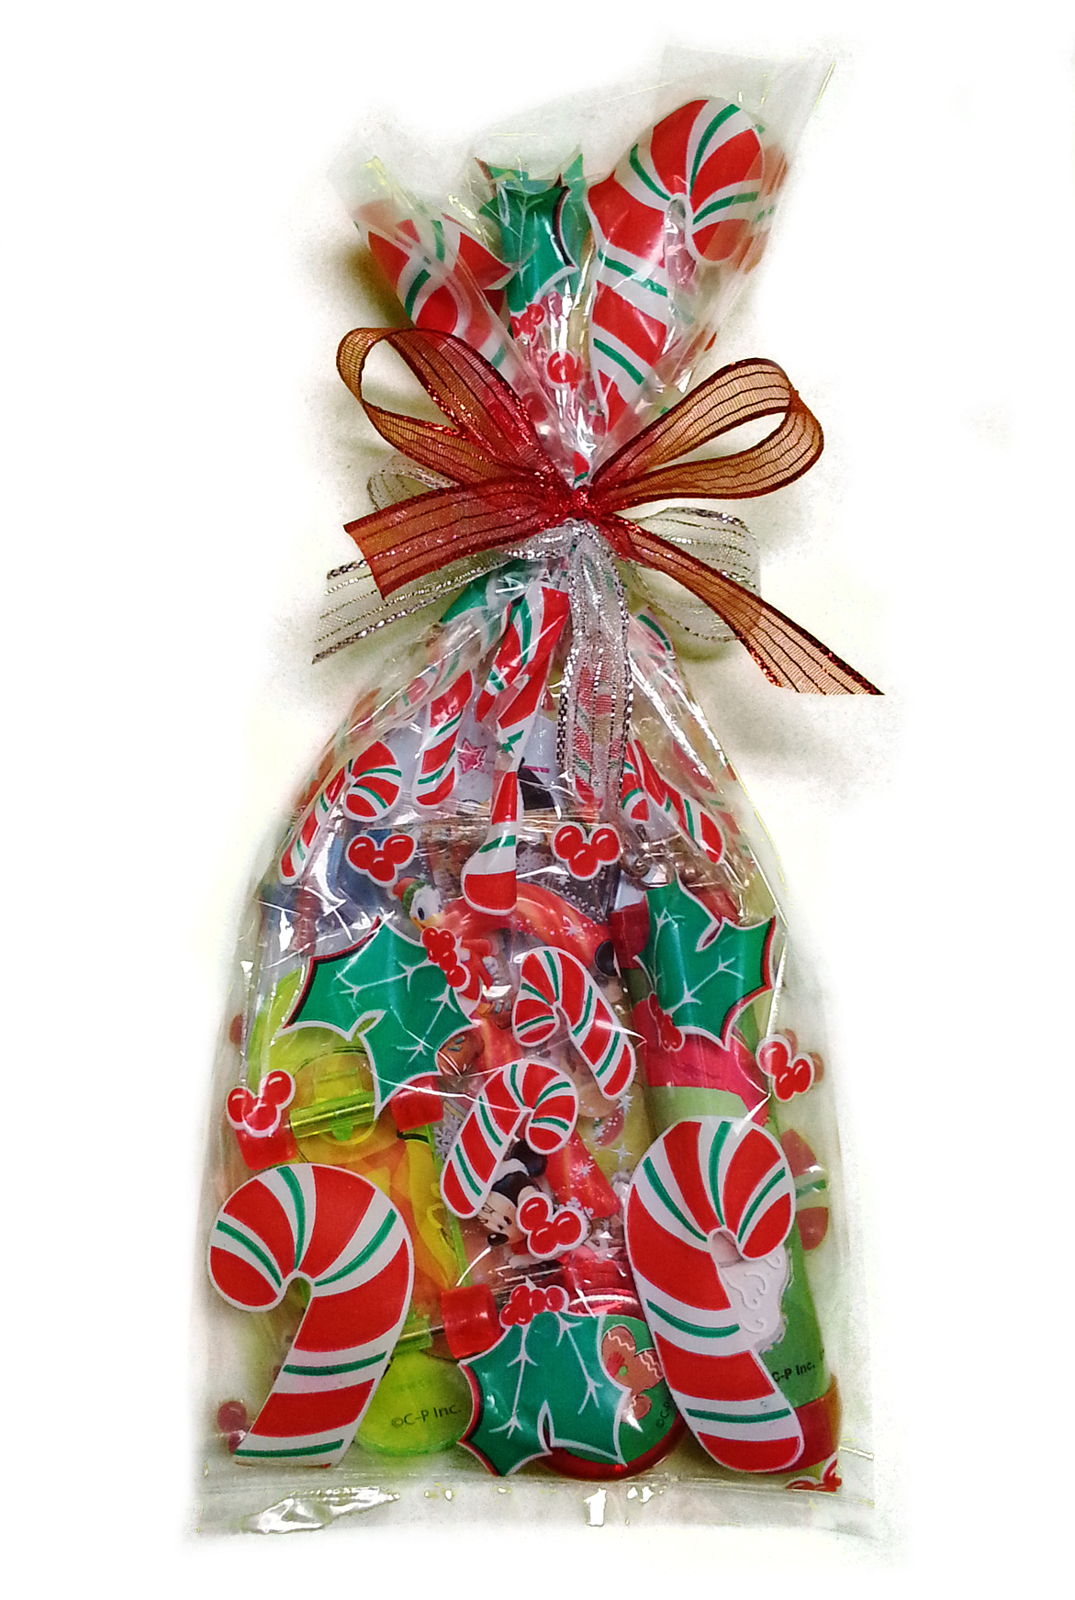 25 Red Jewel Swirls Cello Bags 3.5x2x7.5 Holiday Candy Gifts Wedding Favors USA